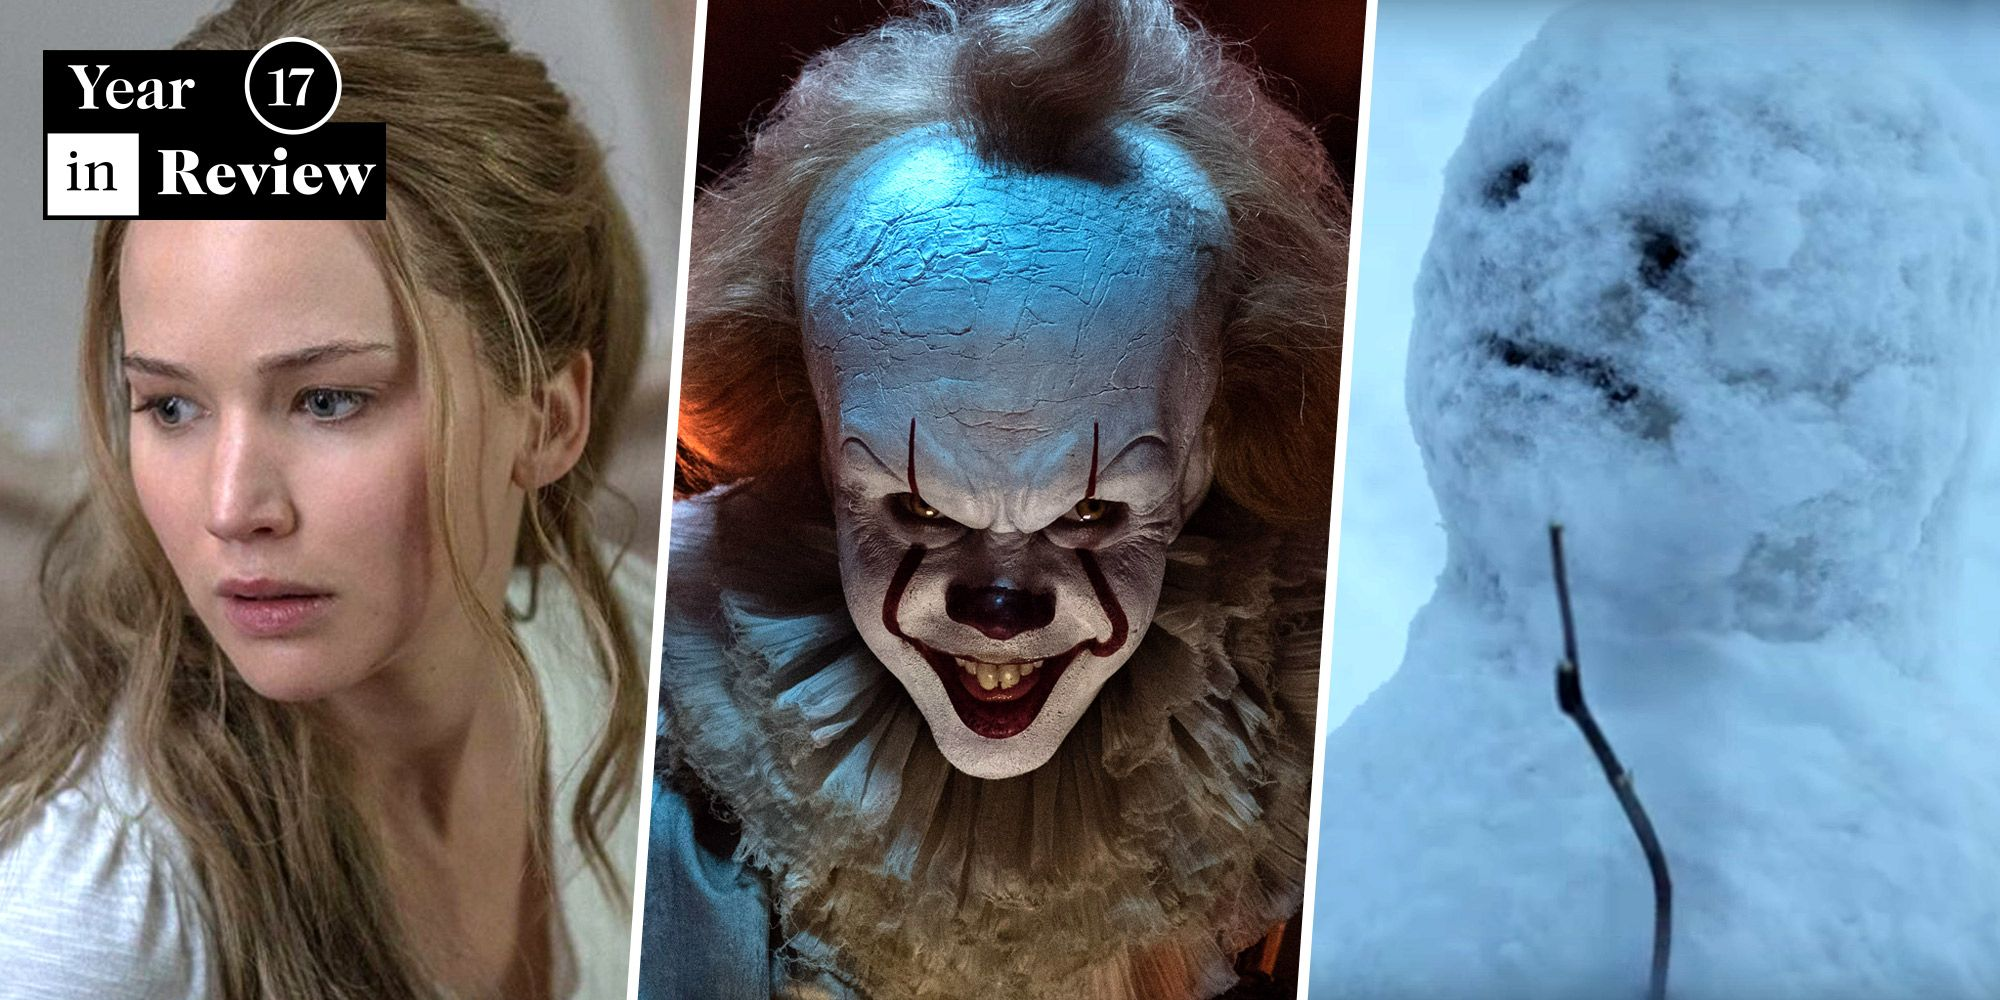 16 Best Horror Movies of 2017 - Scariest Movies of the Year